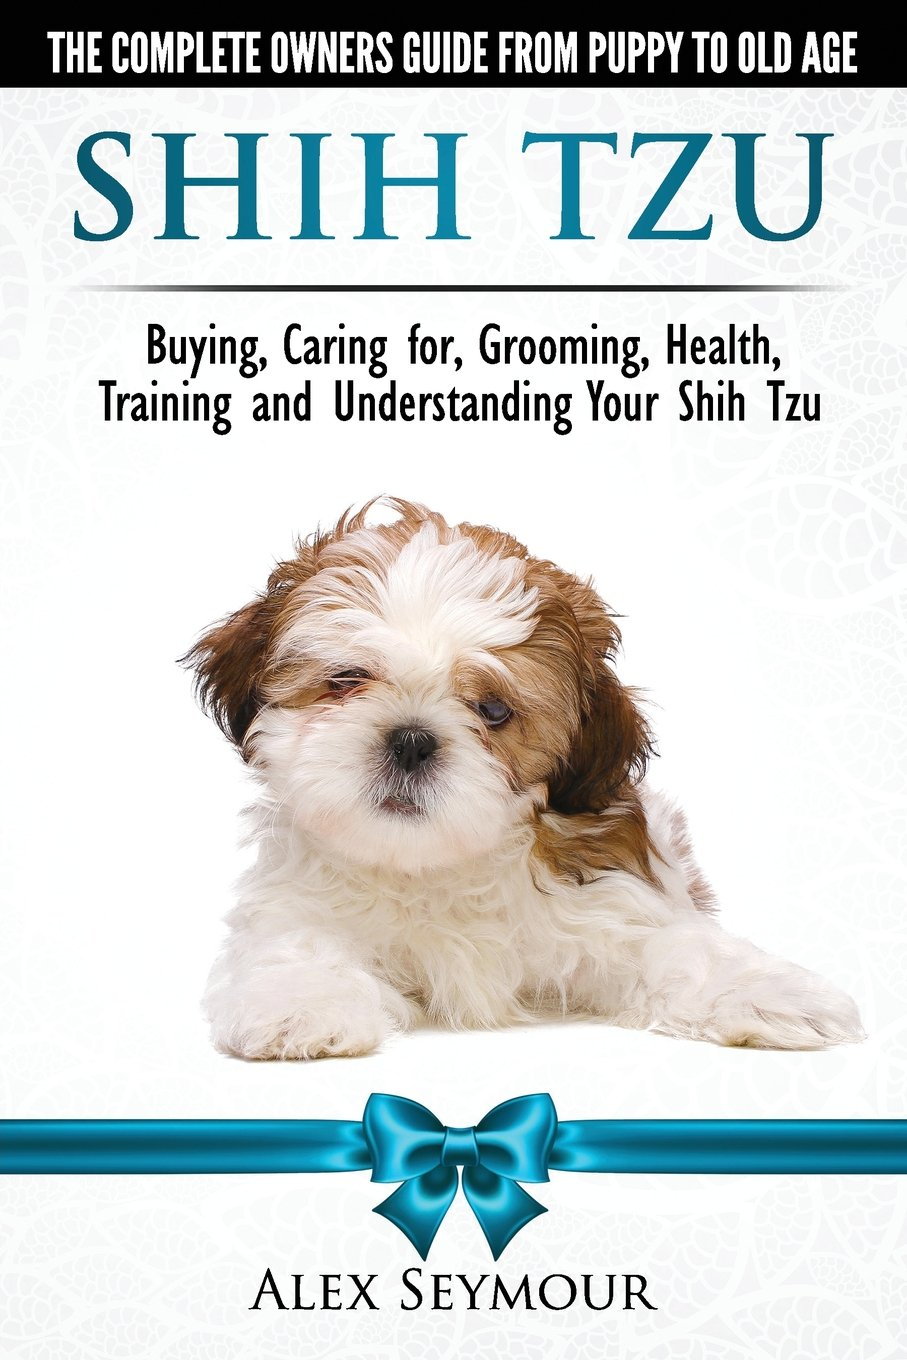 Shih Tzu Dogs The Complete Owners Guide From Puppy To Old Age